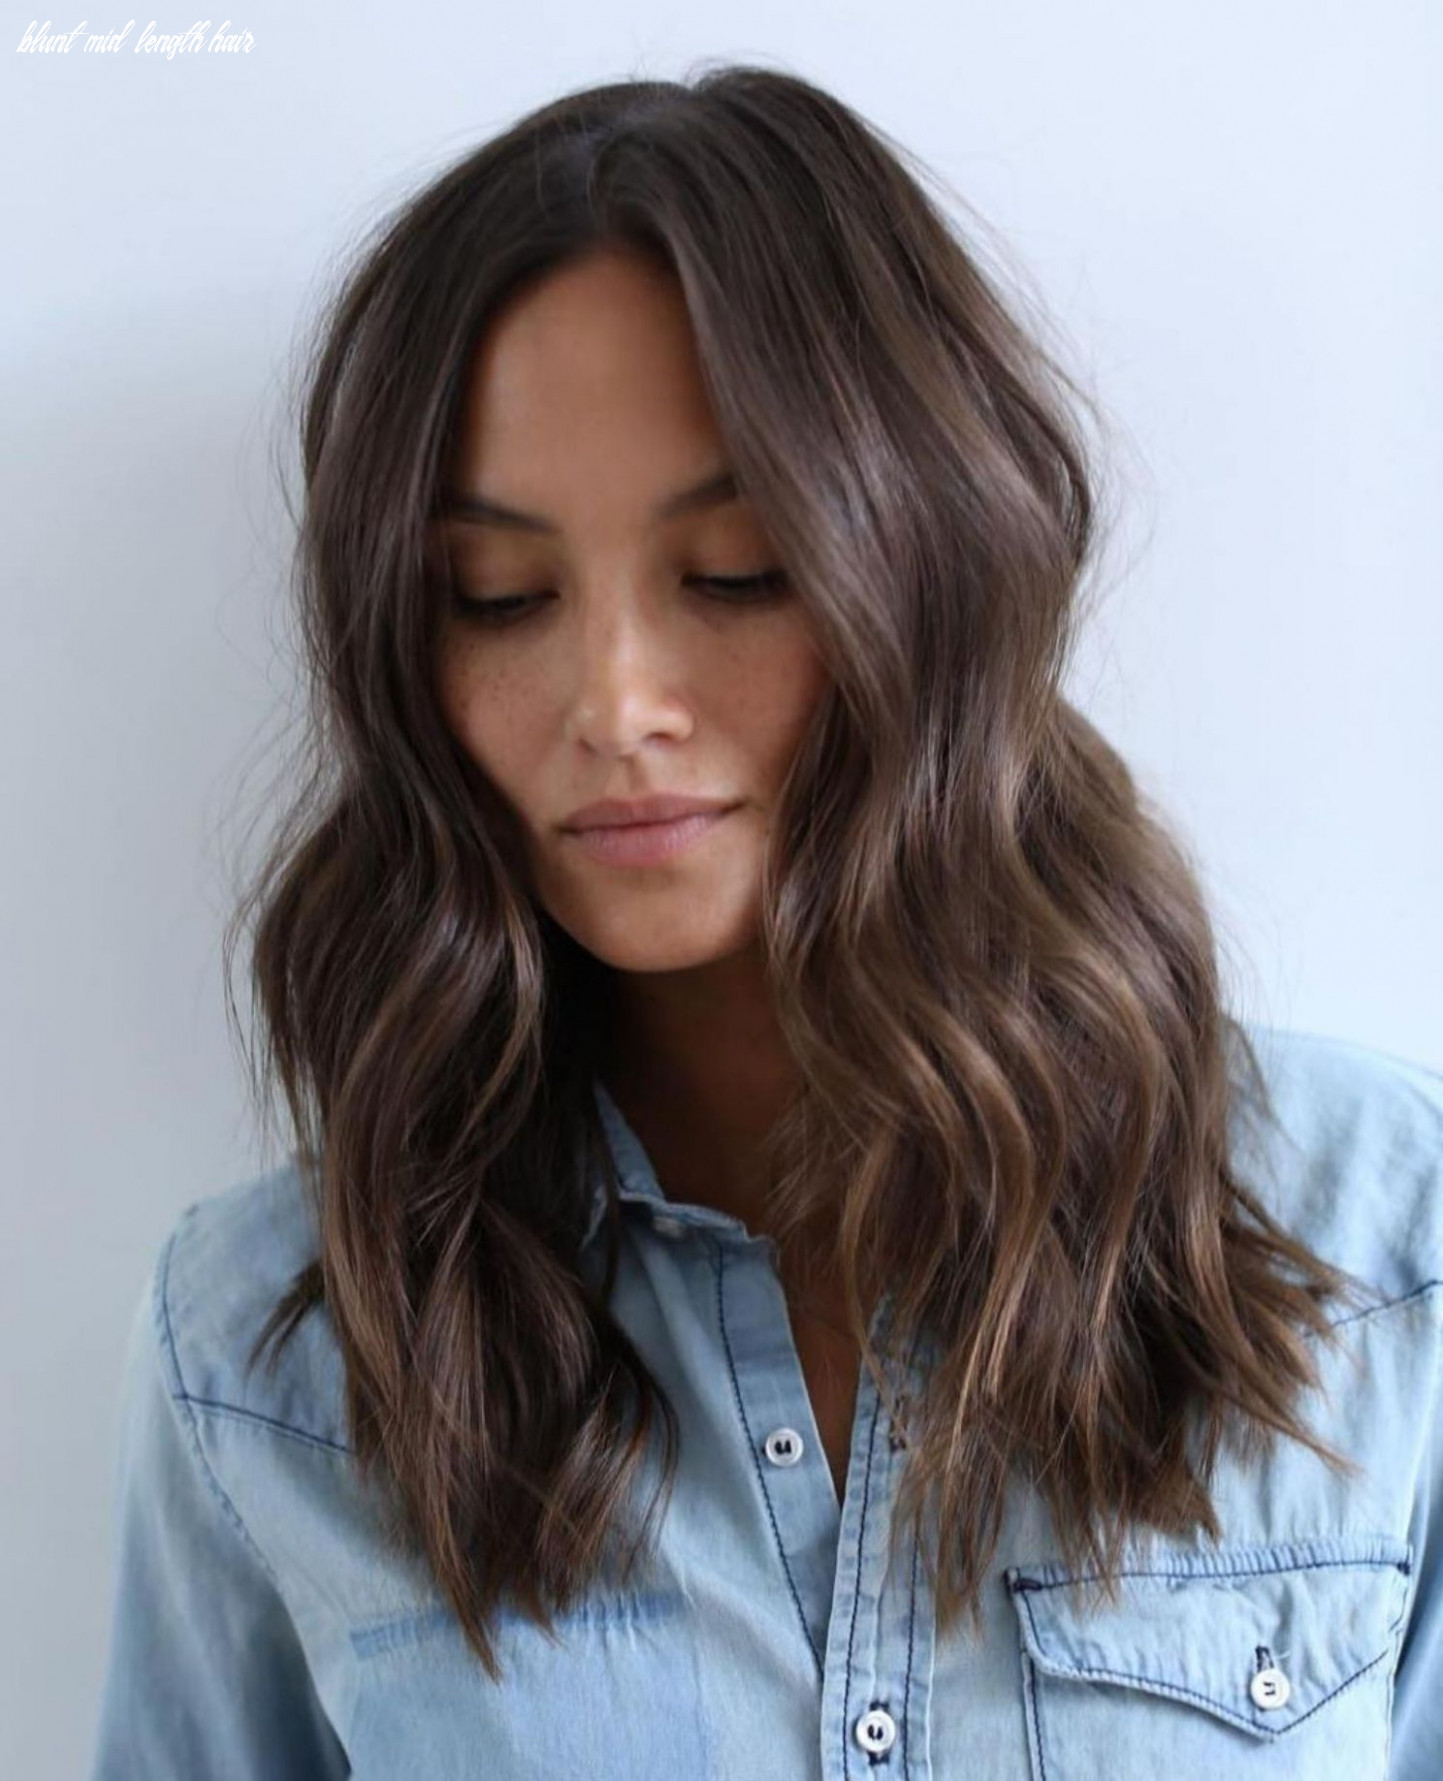 10 chocolate brown hair color ideas for brunettes | hair styles